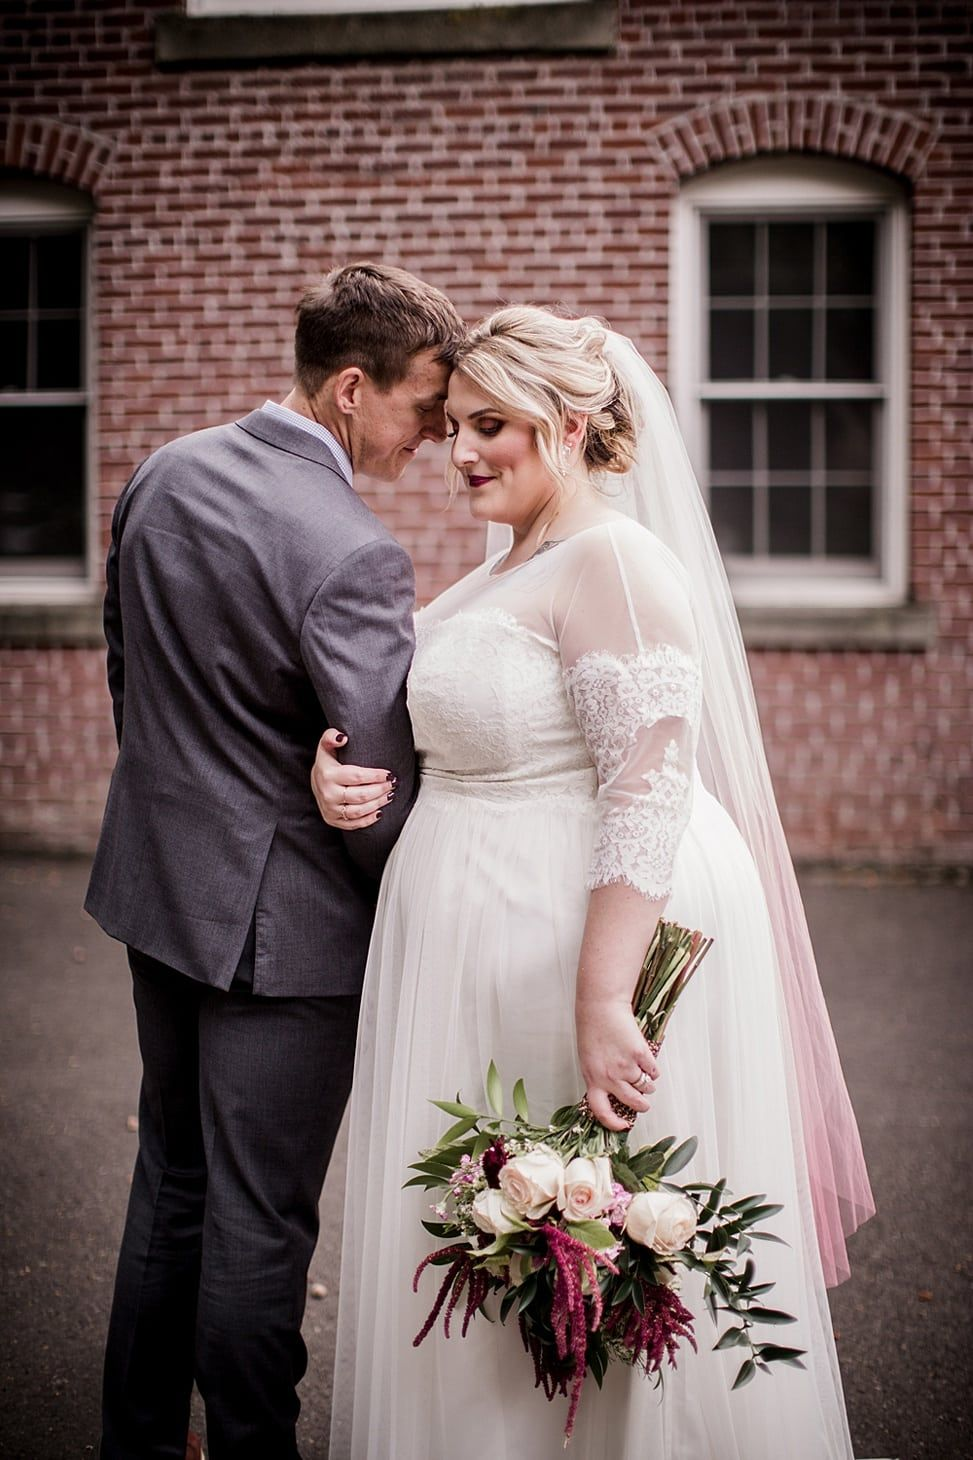 Our 15k Wedding With Bourbon Beer And Love A Practical Wedding Practical Wedding Wedding Plus Size Brides